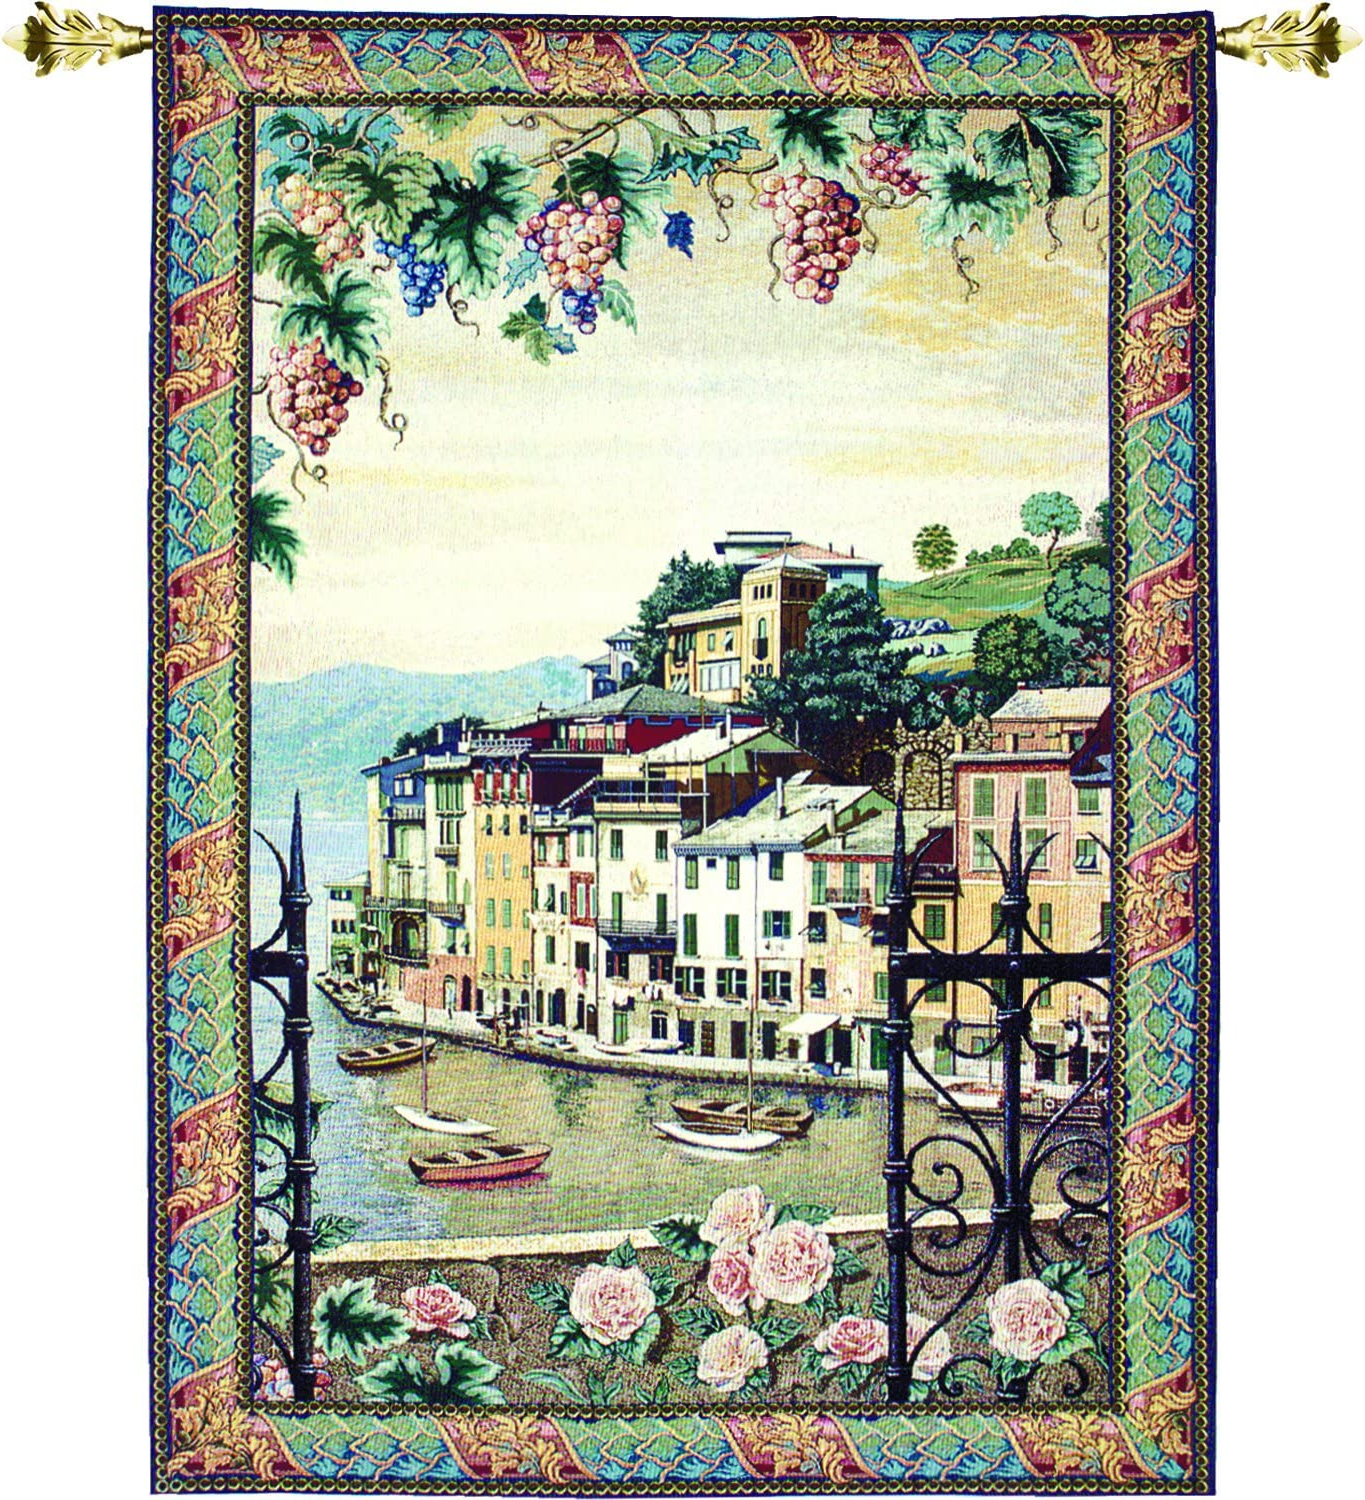 Most Popular Blended Fabric Living Life Bell Pull Wall Hangings With Regard To Amazon: Manual Woodworkers & Weavers Grande Tapestry (View 7 of 20)